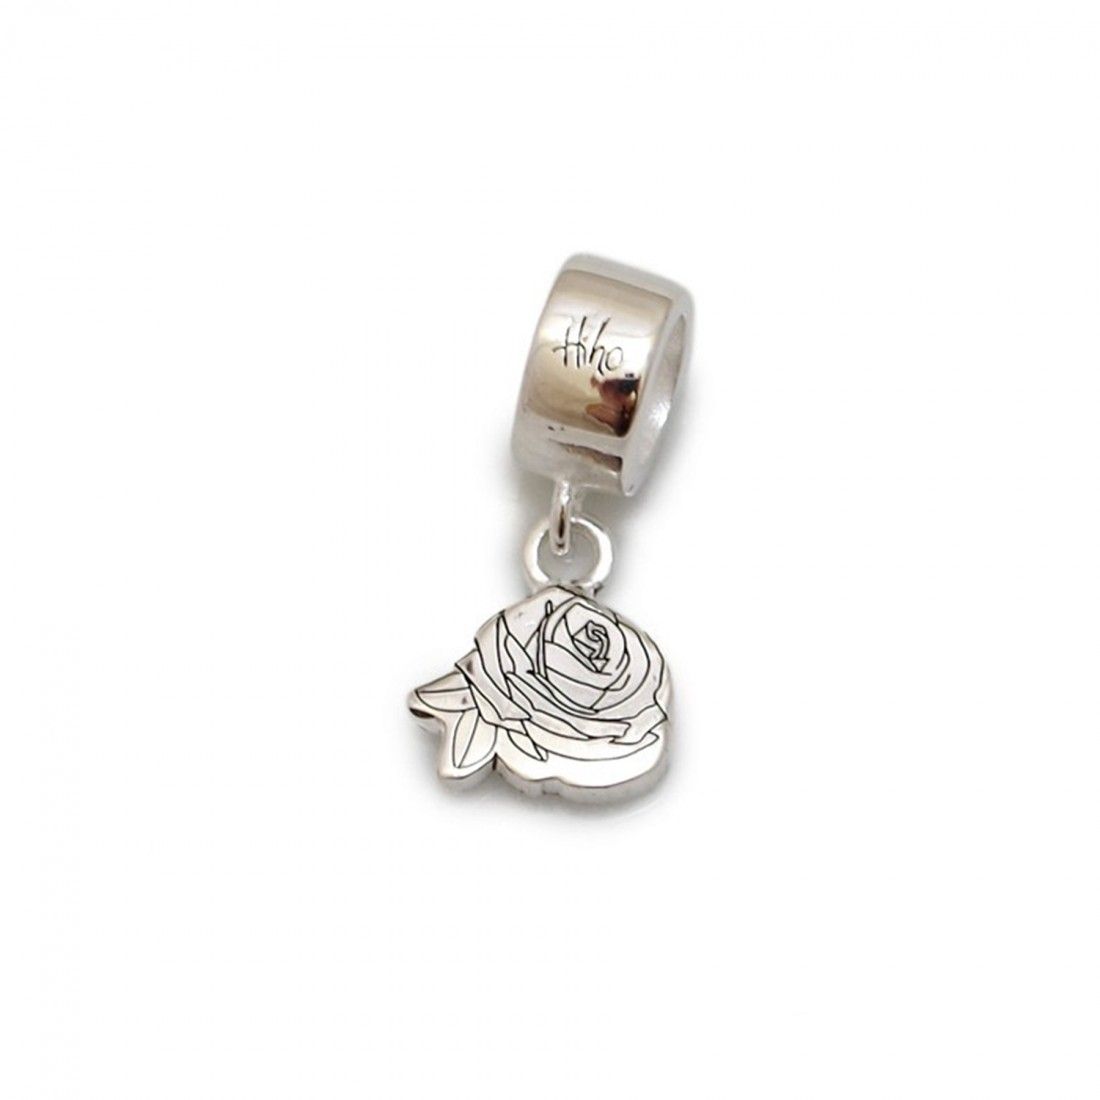 Exclusive Jemima Layzell Trust, Sterling Silver Rose Roller Charm